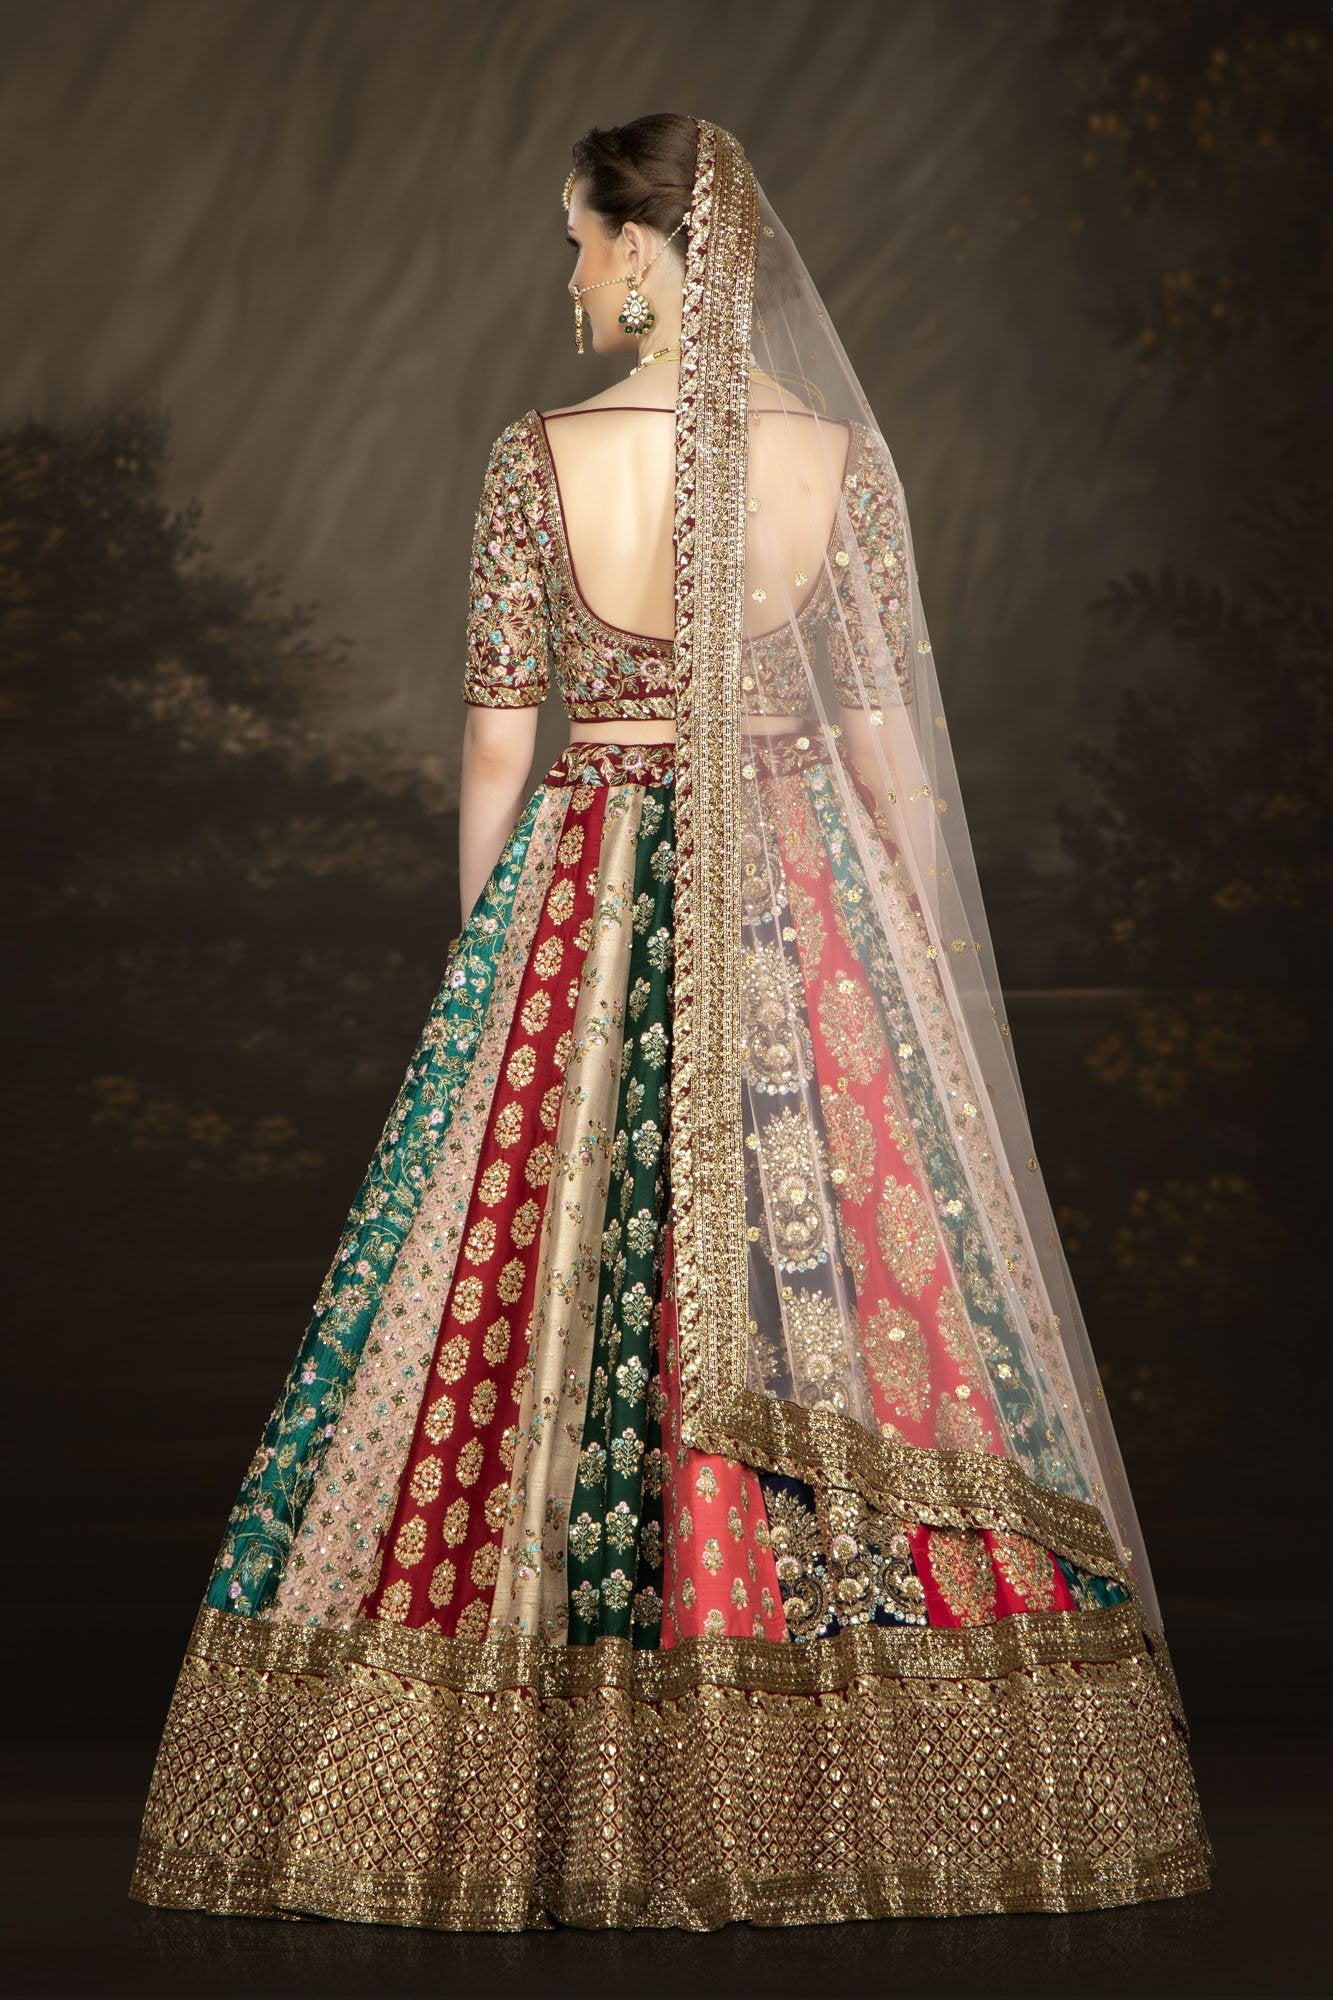 Multi-colored Bridal Lehenga with Intricate Embroidery Work